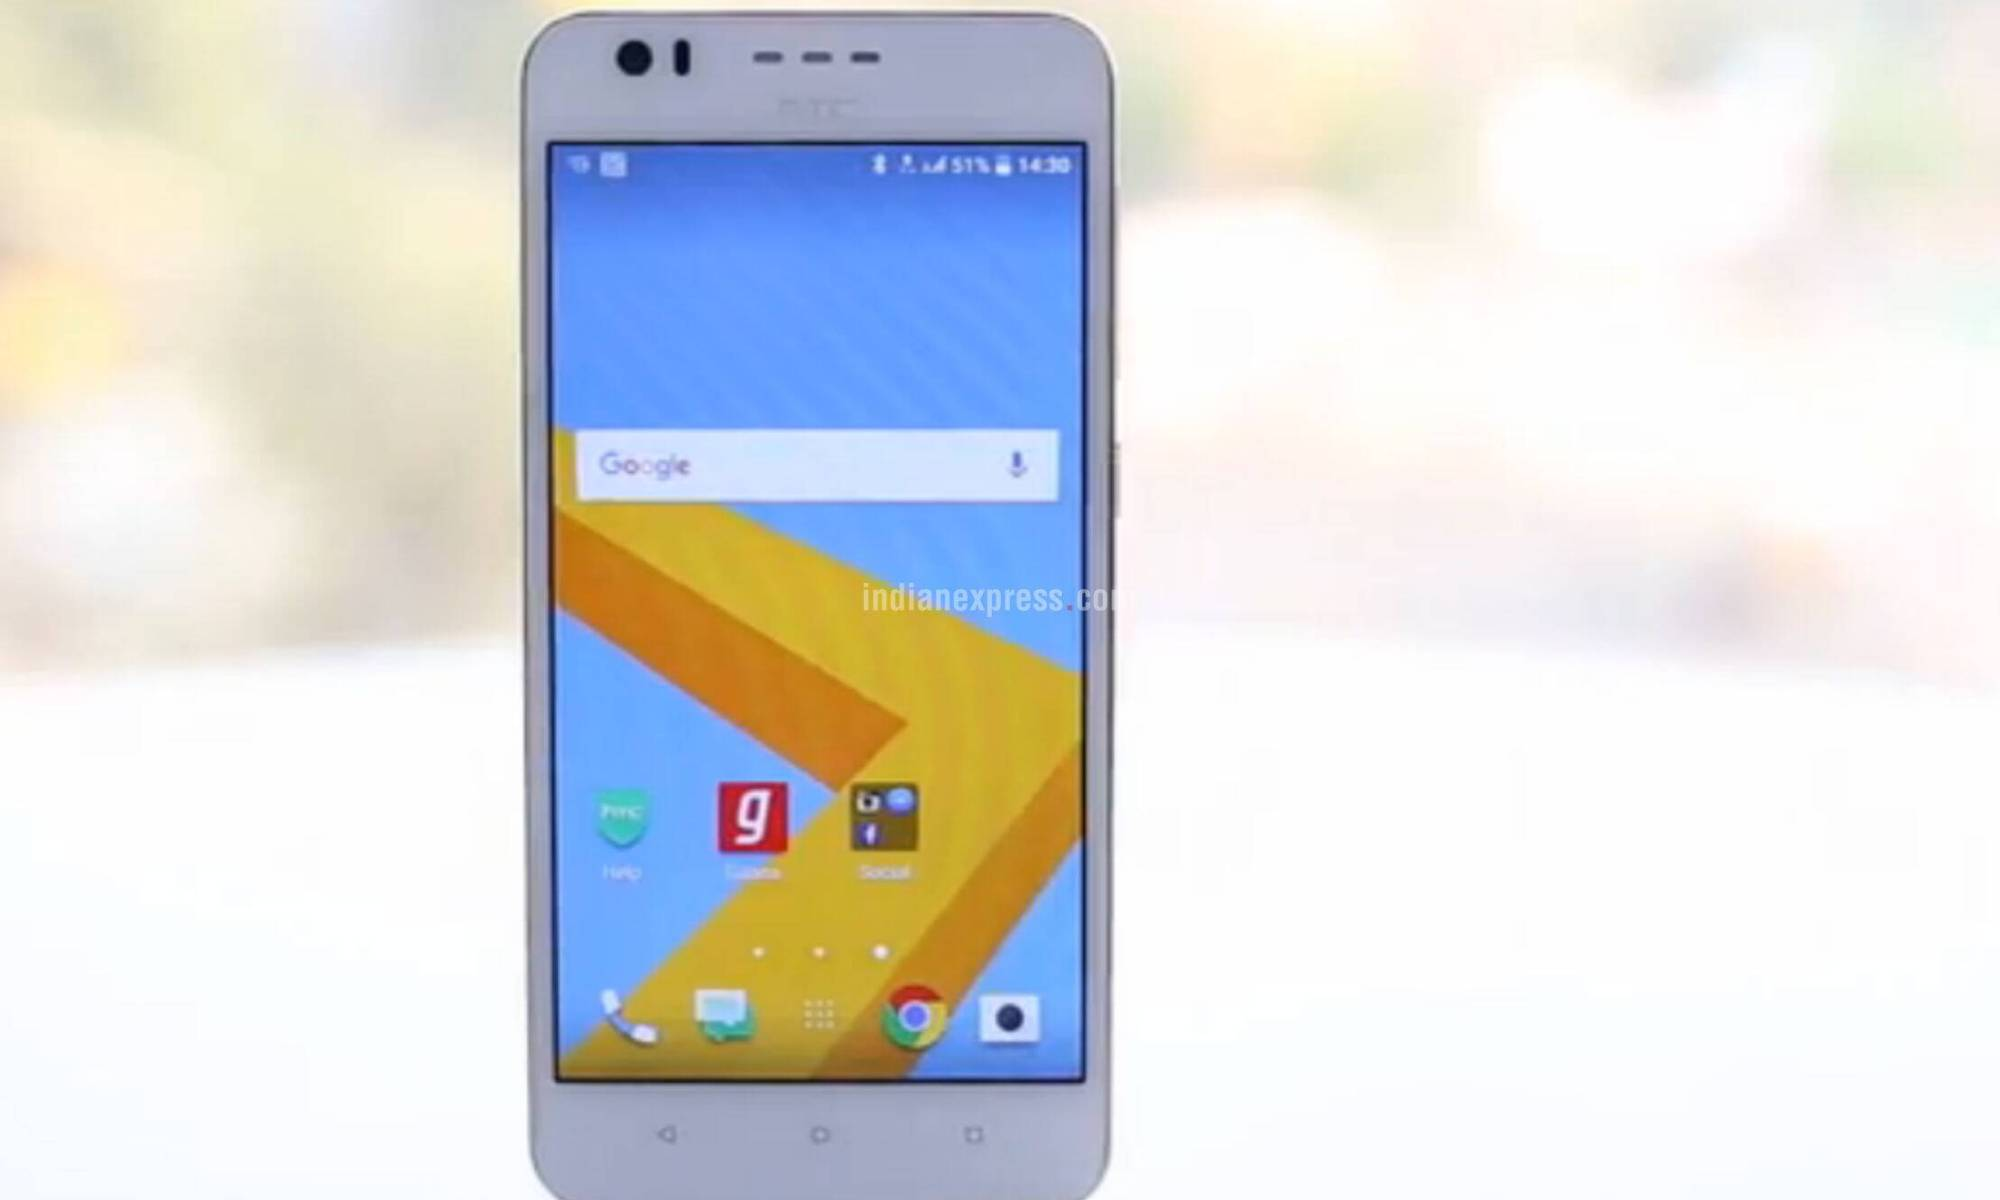 How to Root HTC 10 Lifestyle with Magisk without TWRP